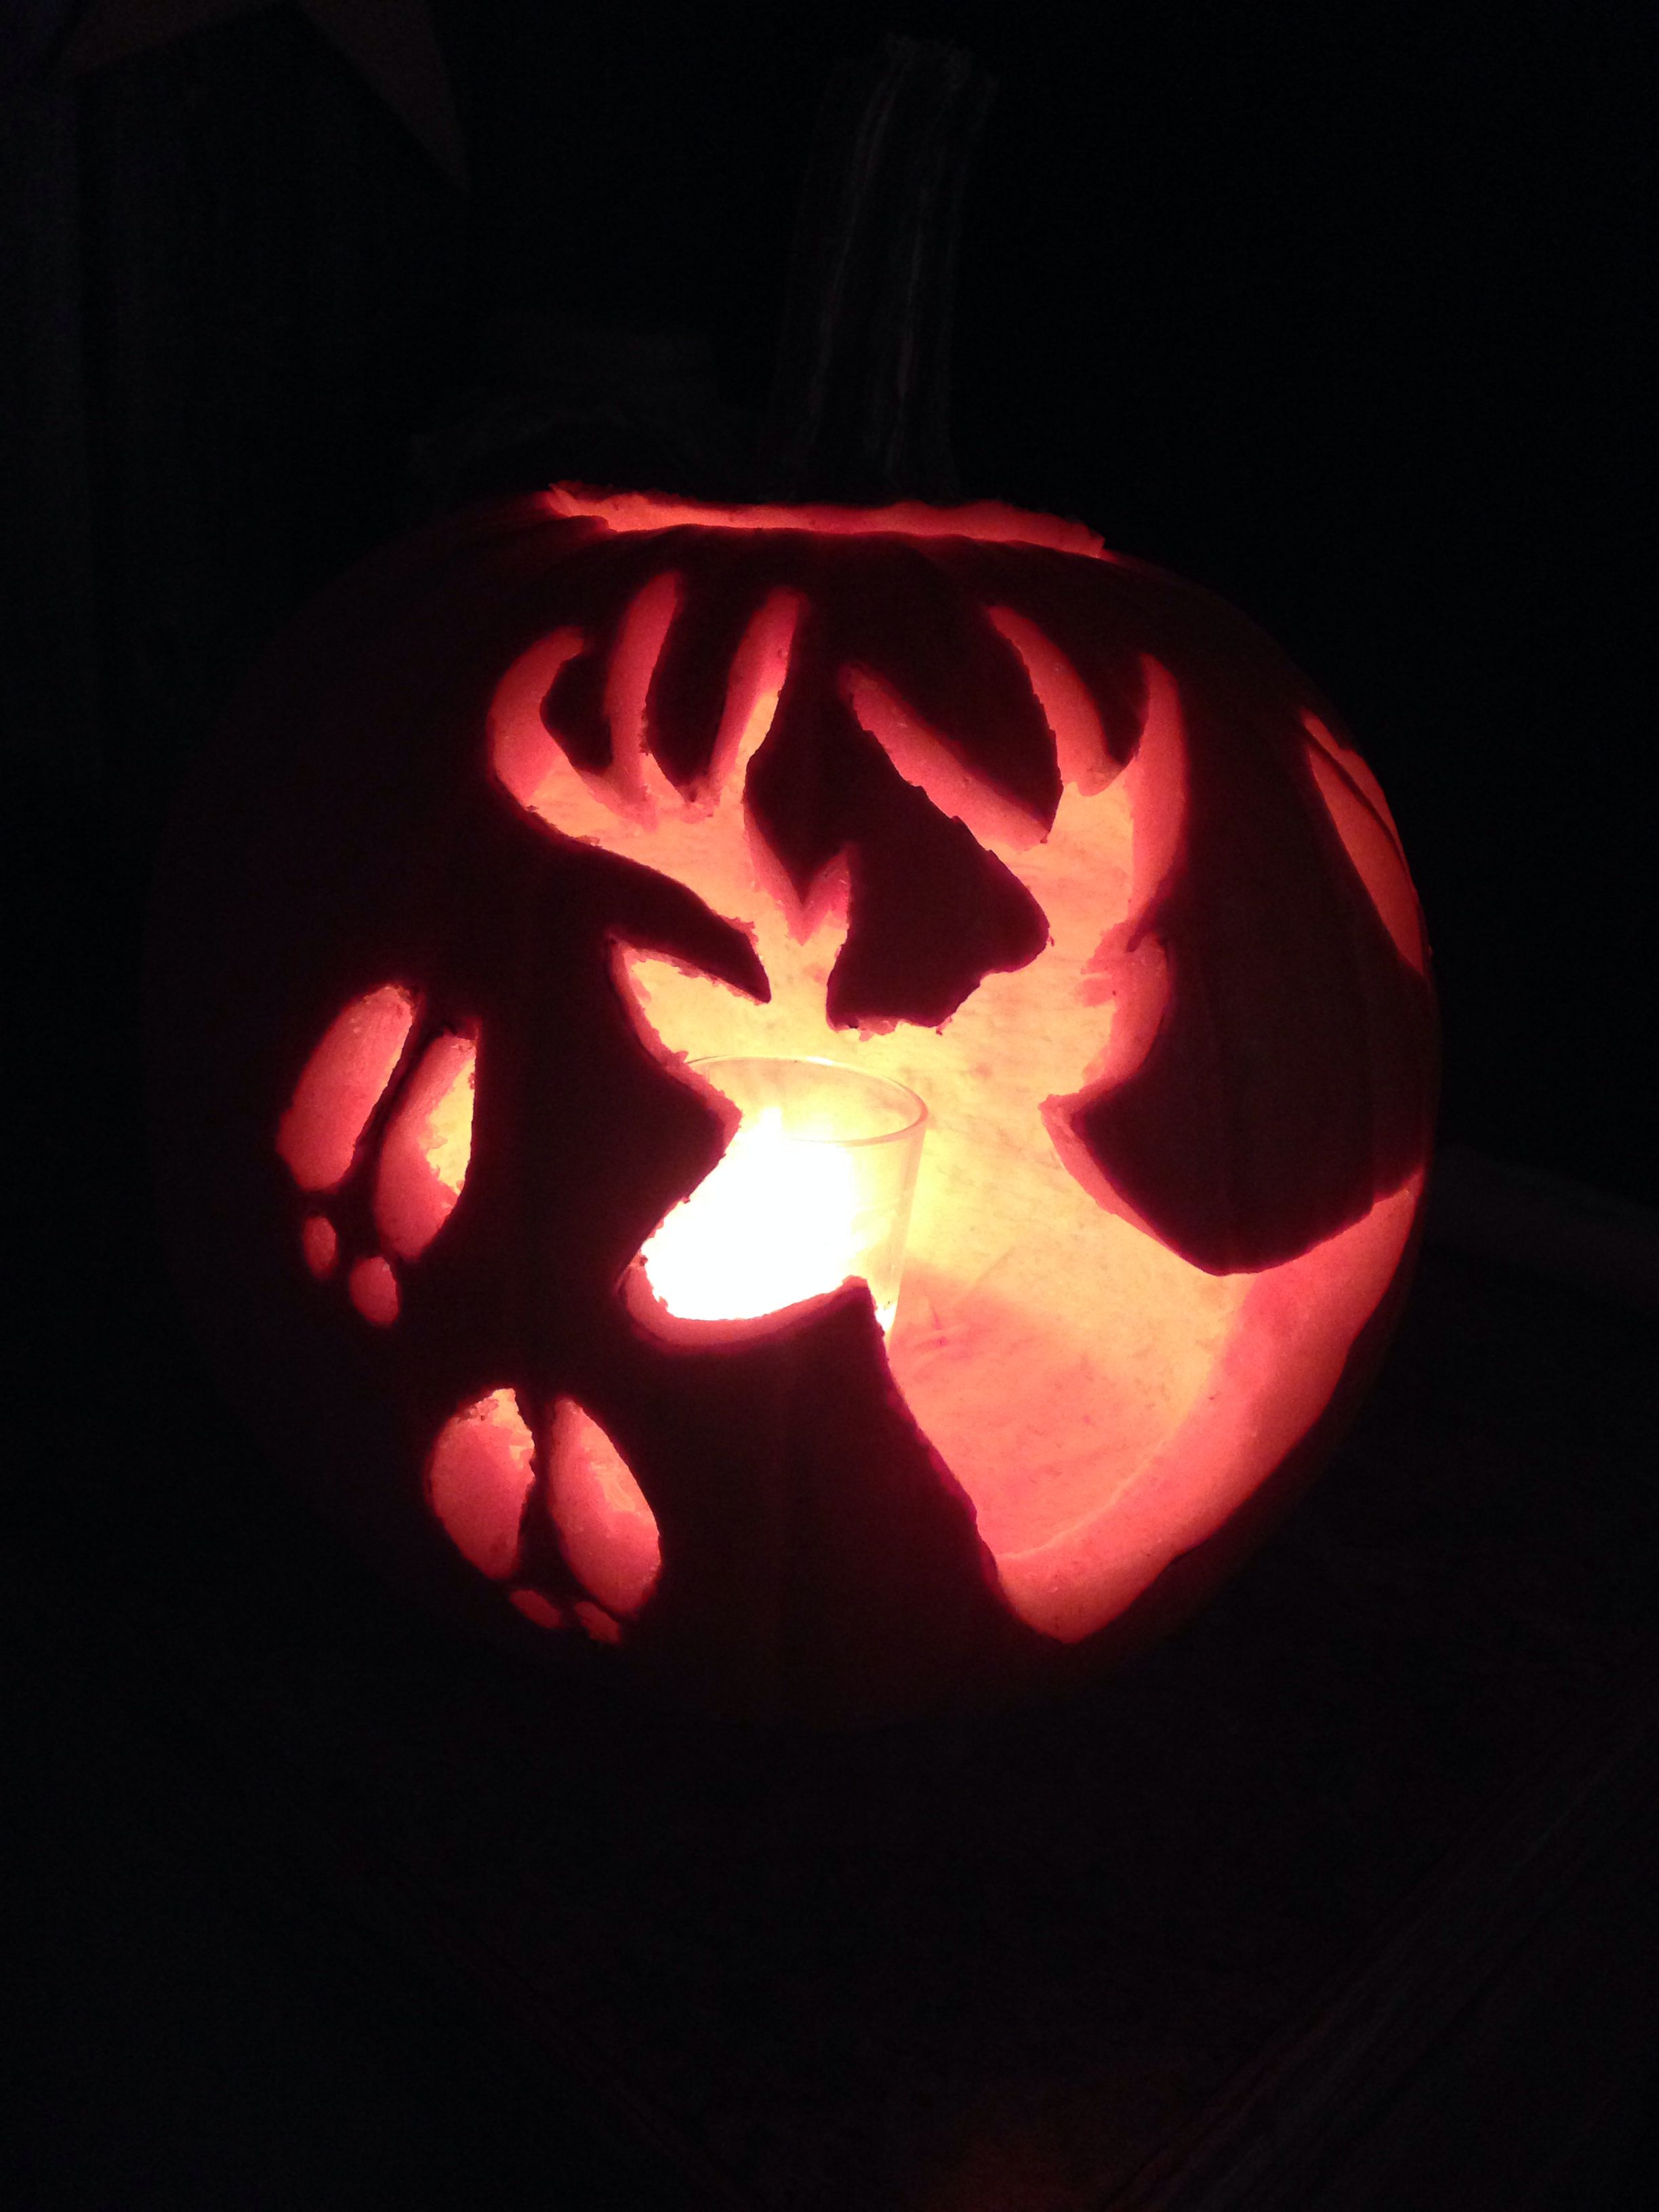 DIY deer silhouette pumpkin carving